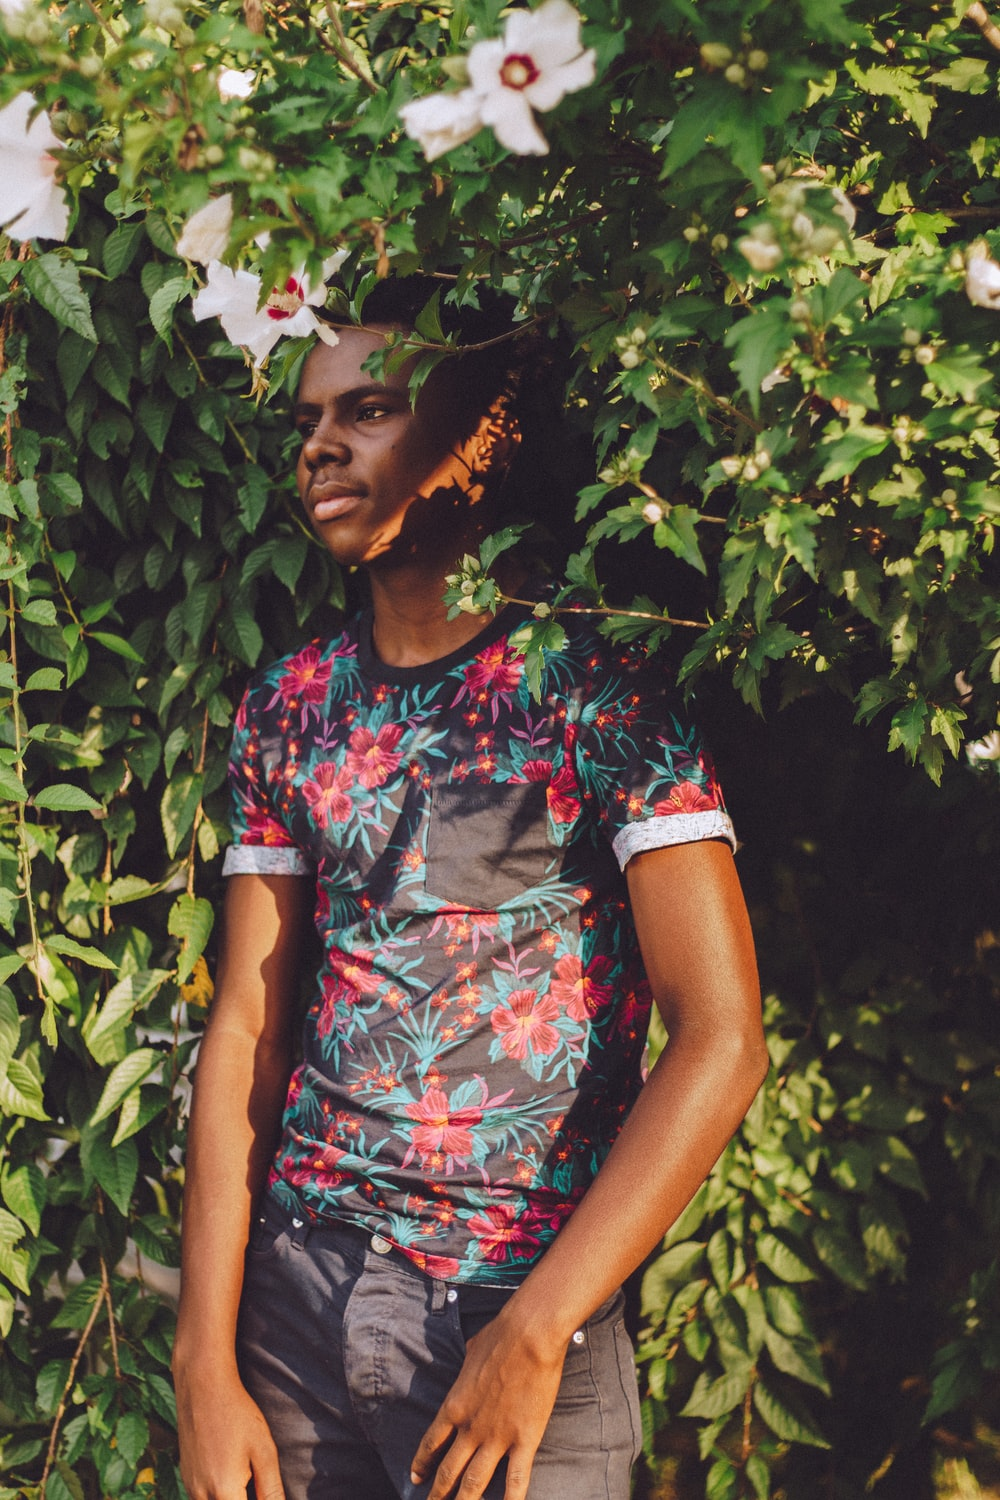 man wearing black, teal, and red floral t-shirt leaning green leaf plant with white flowers